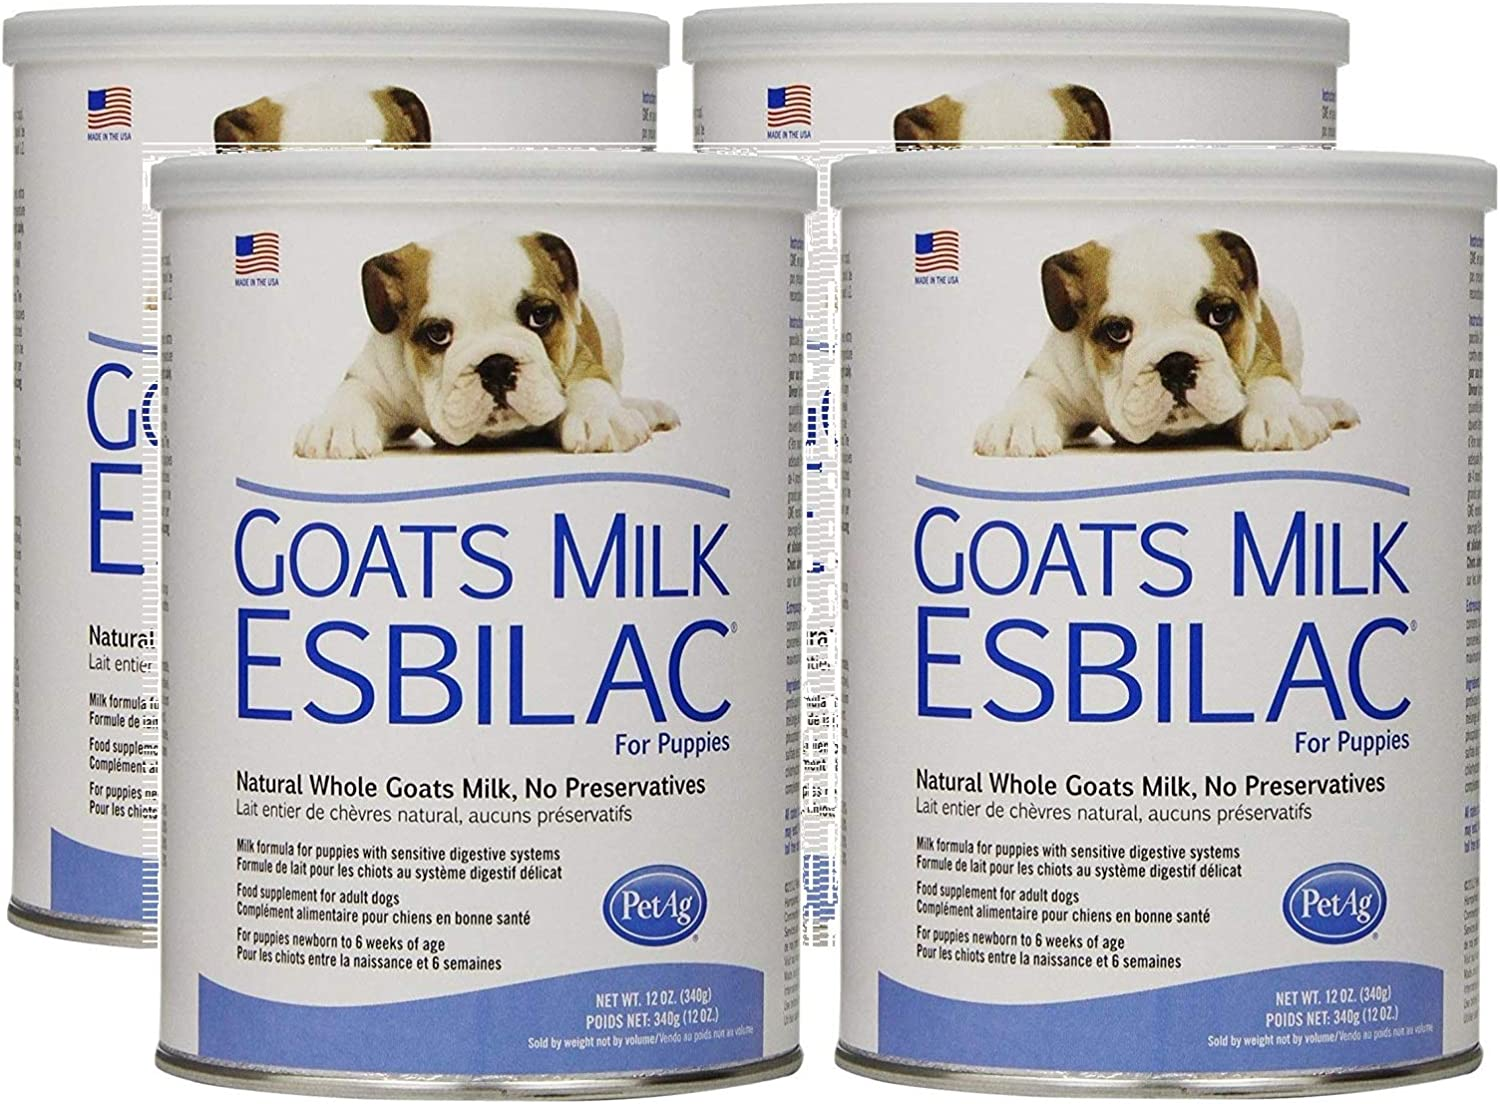 Pet Ag 4 Pack of Goat s Milk Esbilac Powder for Puppies, 12 Ounces Per Canister